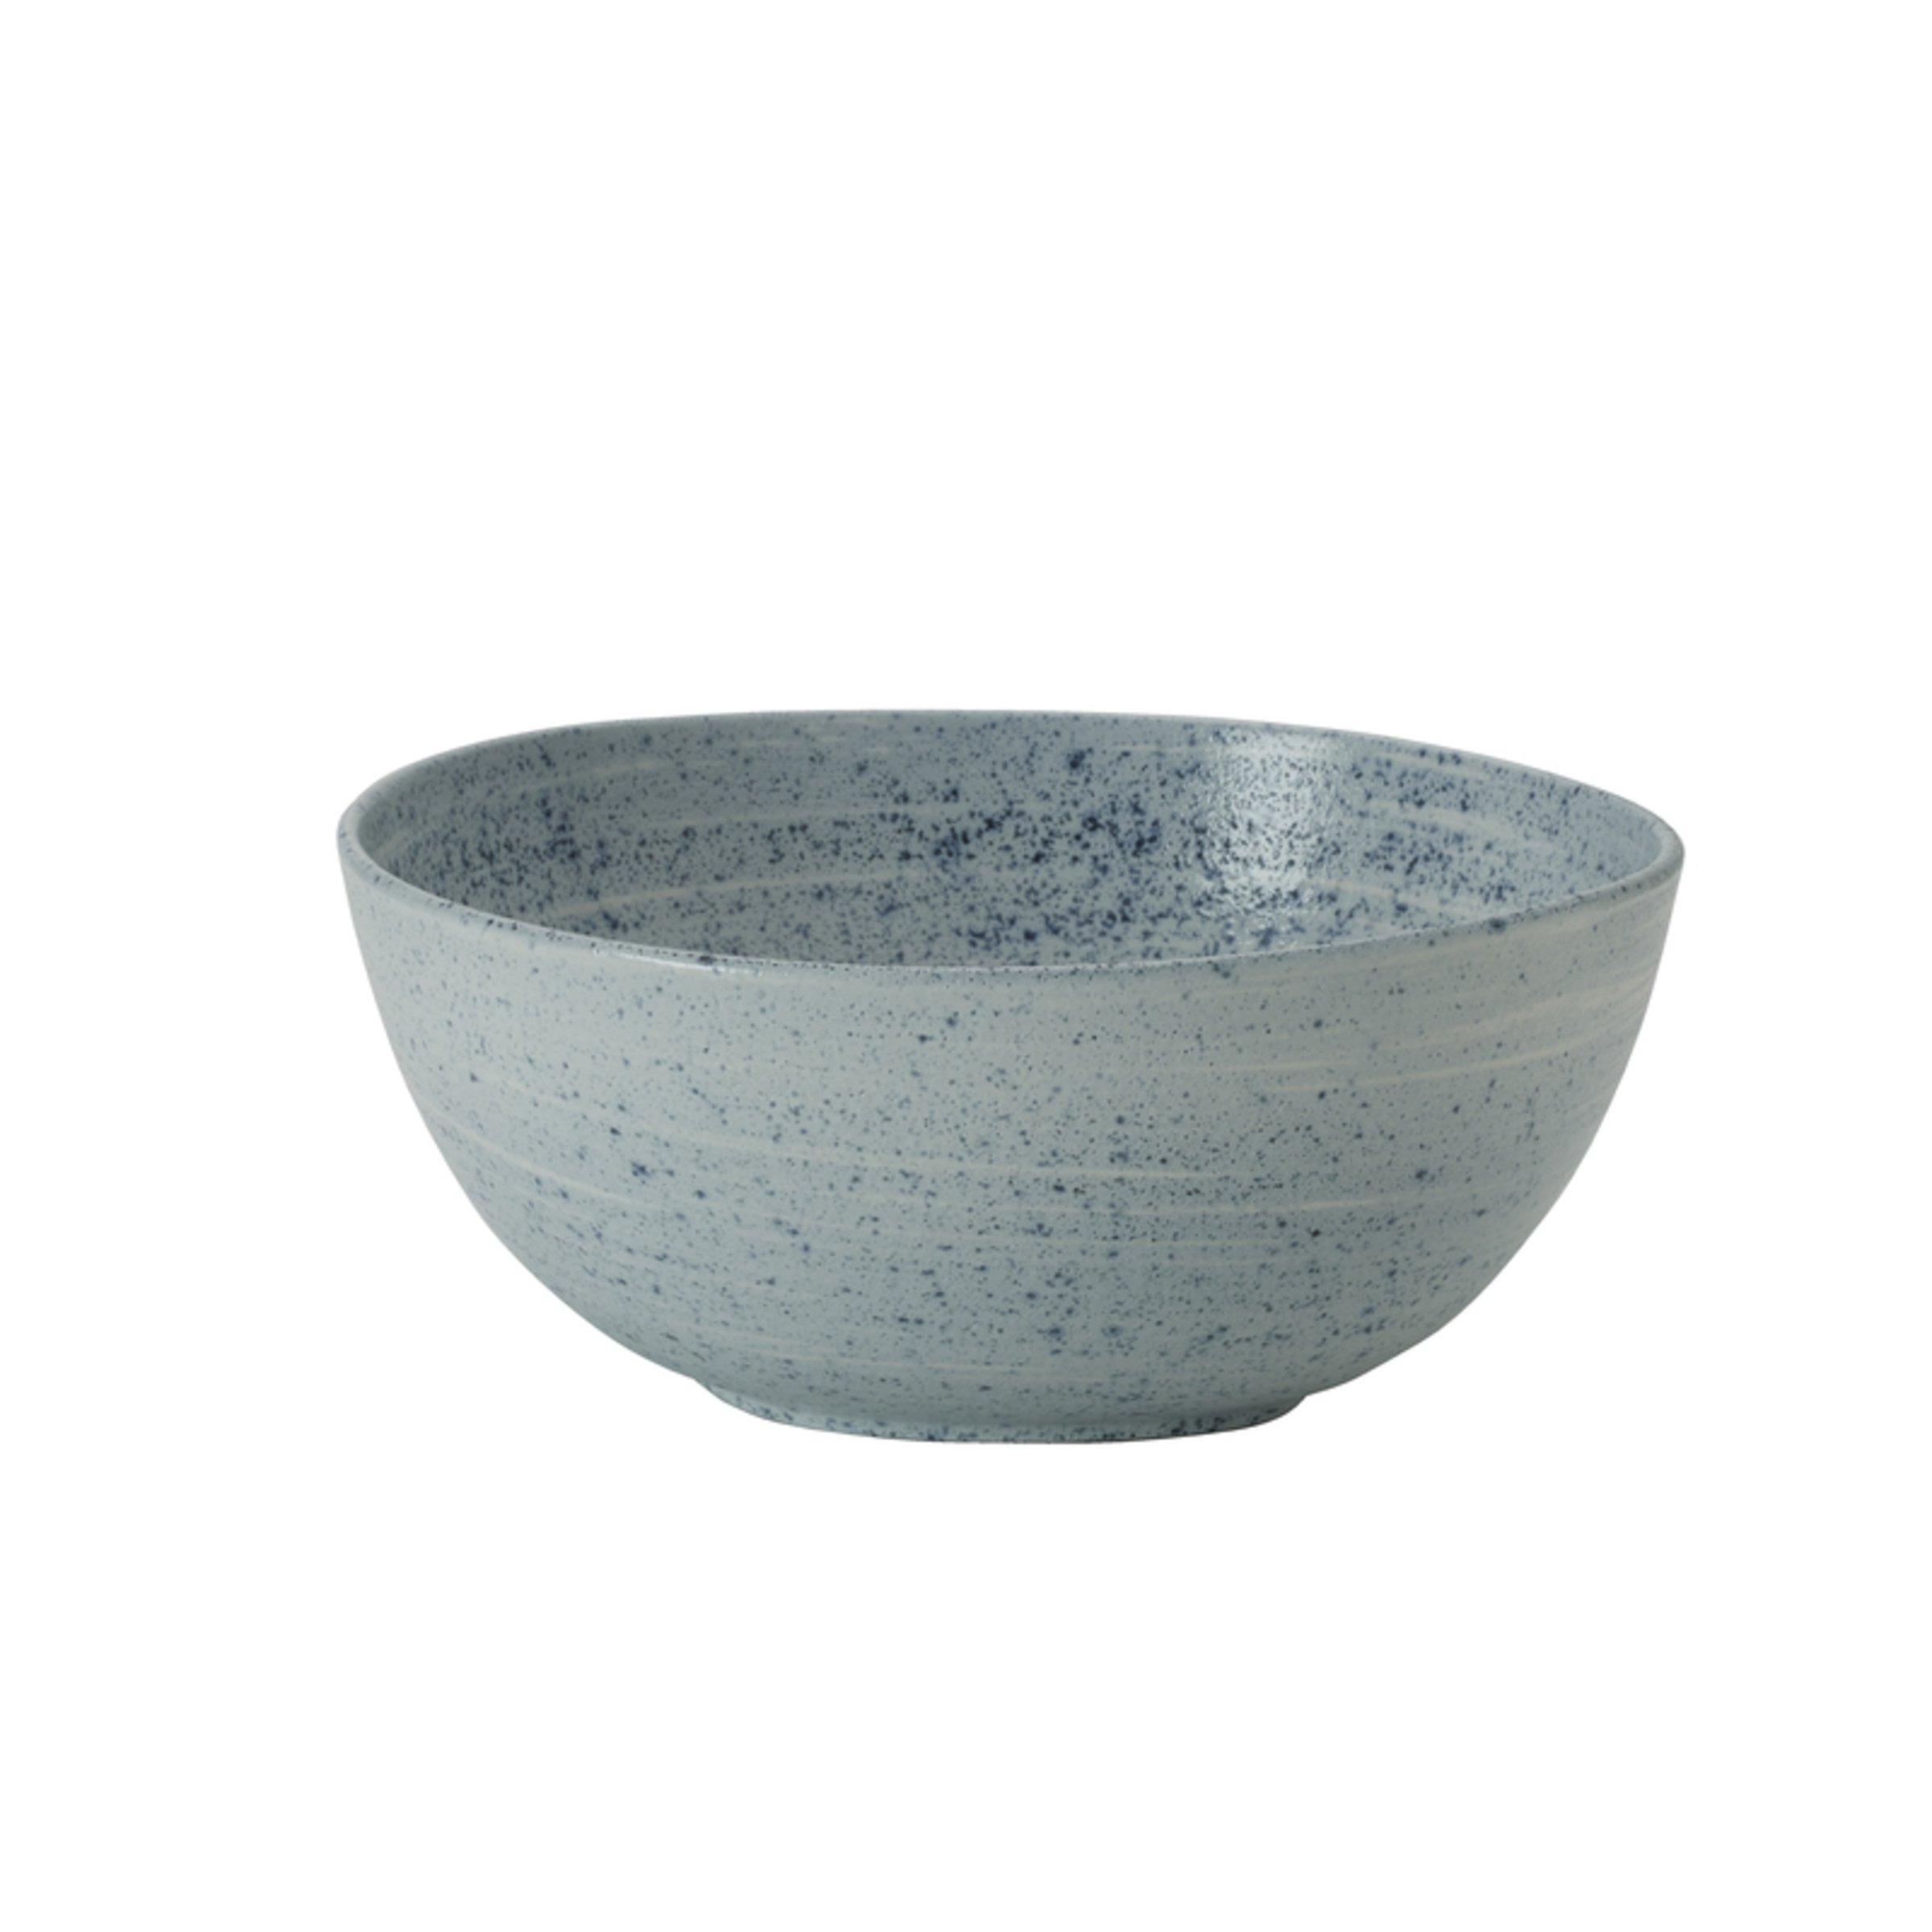 Mikasa 5229339 Whistler Vegetable Serving Bowl, 10-Inch, Blue